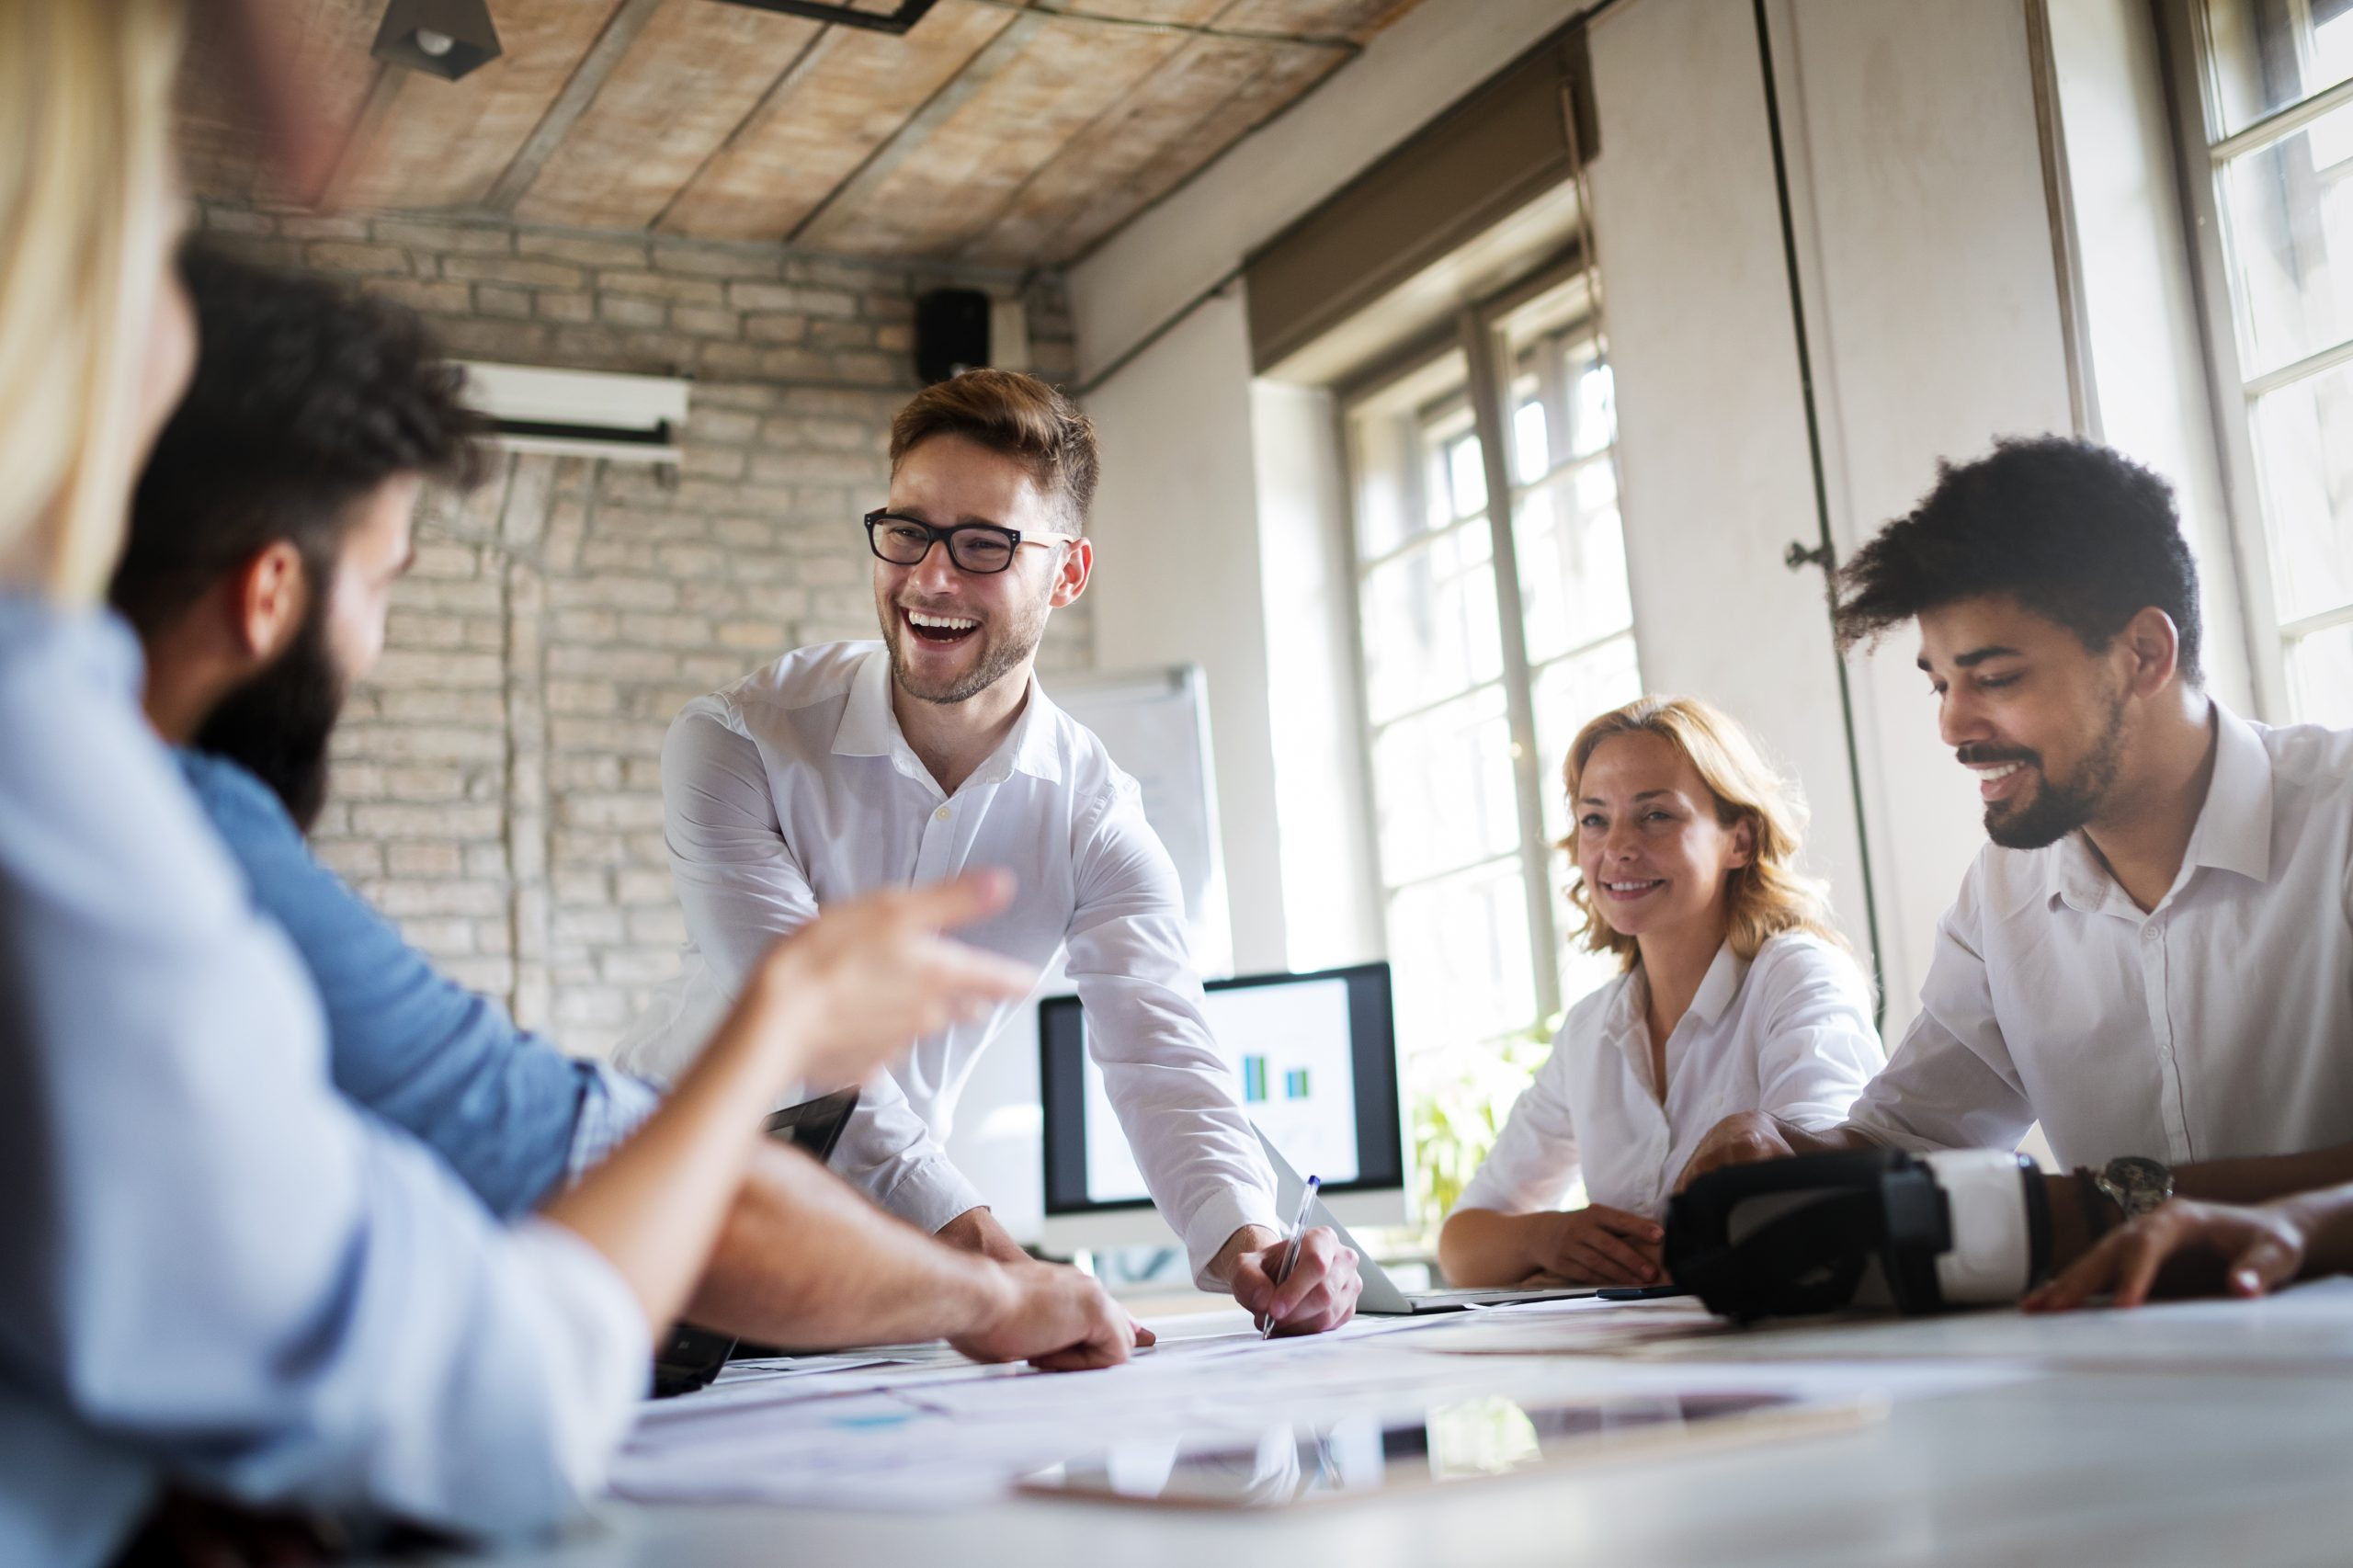 How to Get the Most Out of Team Meetings